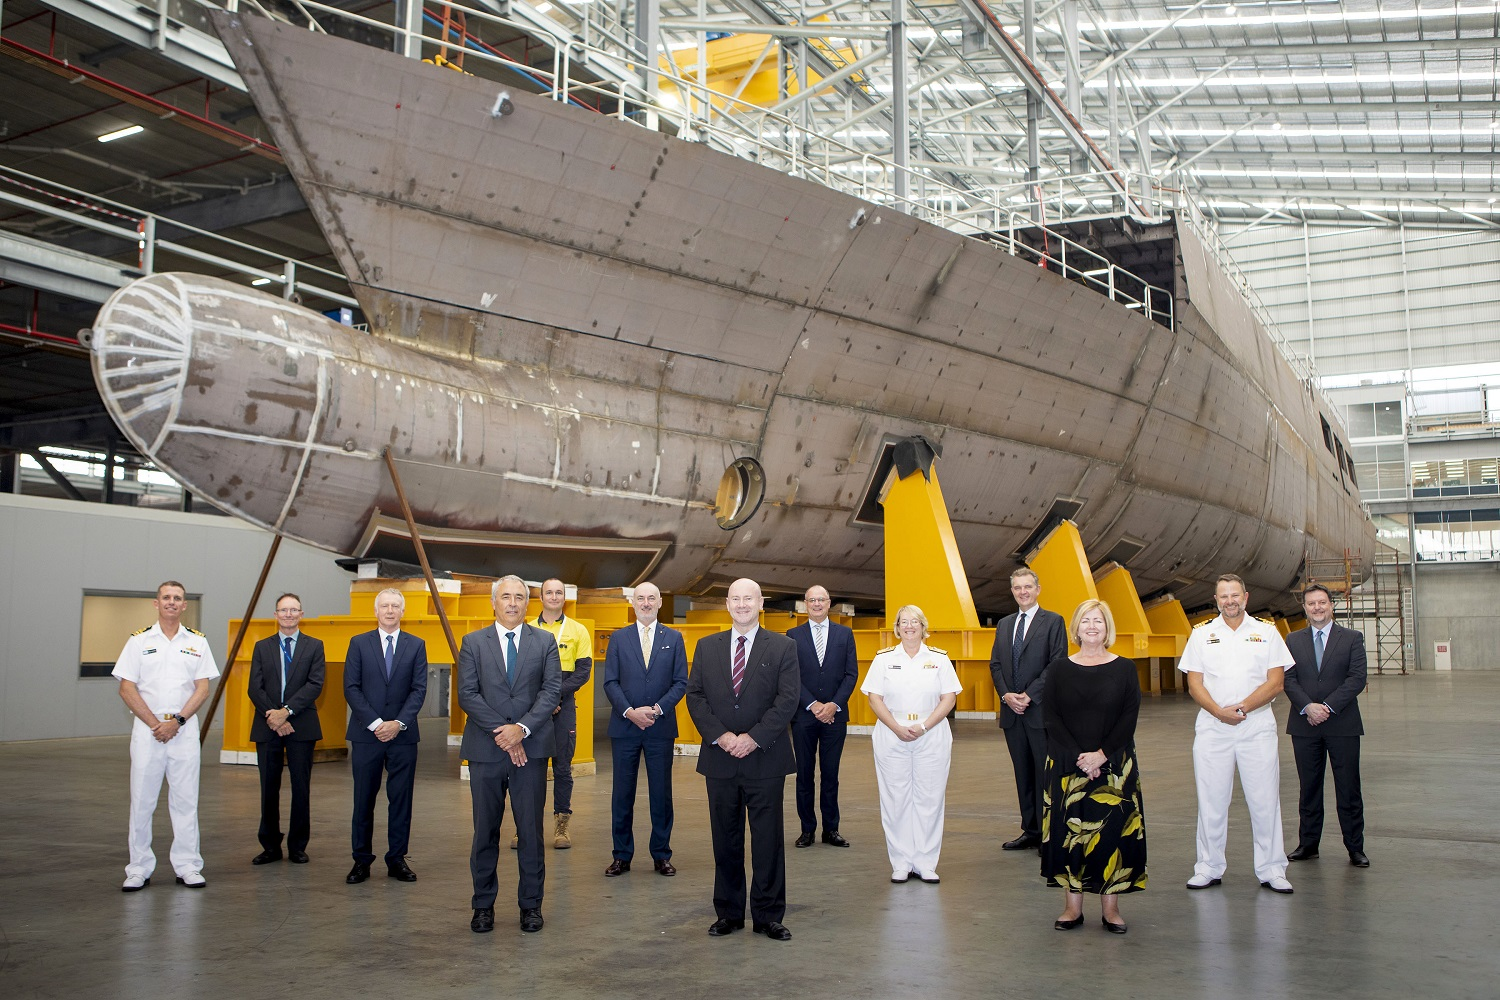 Australian Department of Defence Officially Launches Arafura-class Offshore Patrol Vessel Enterprise